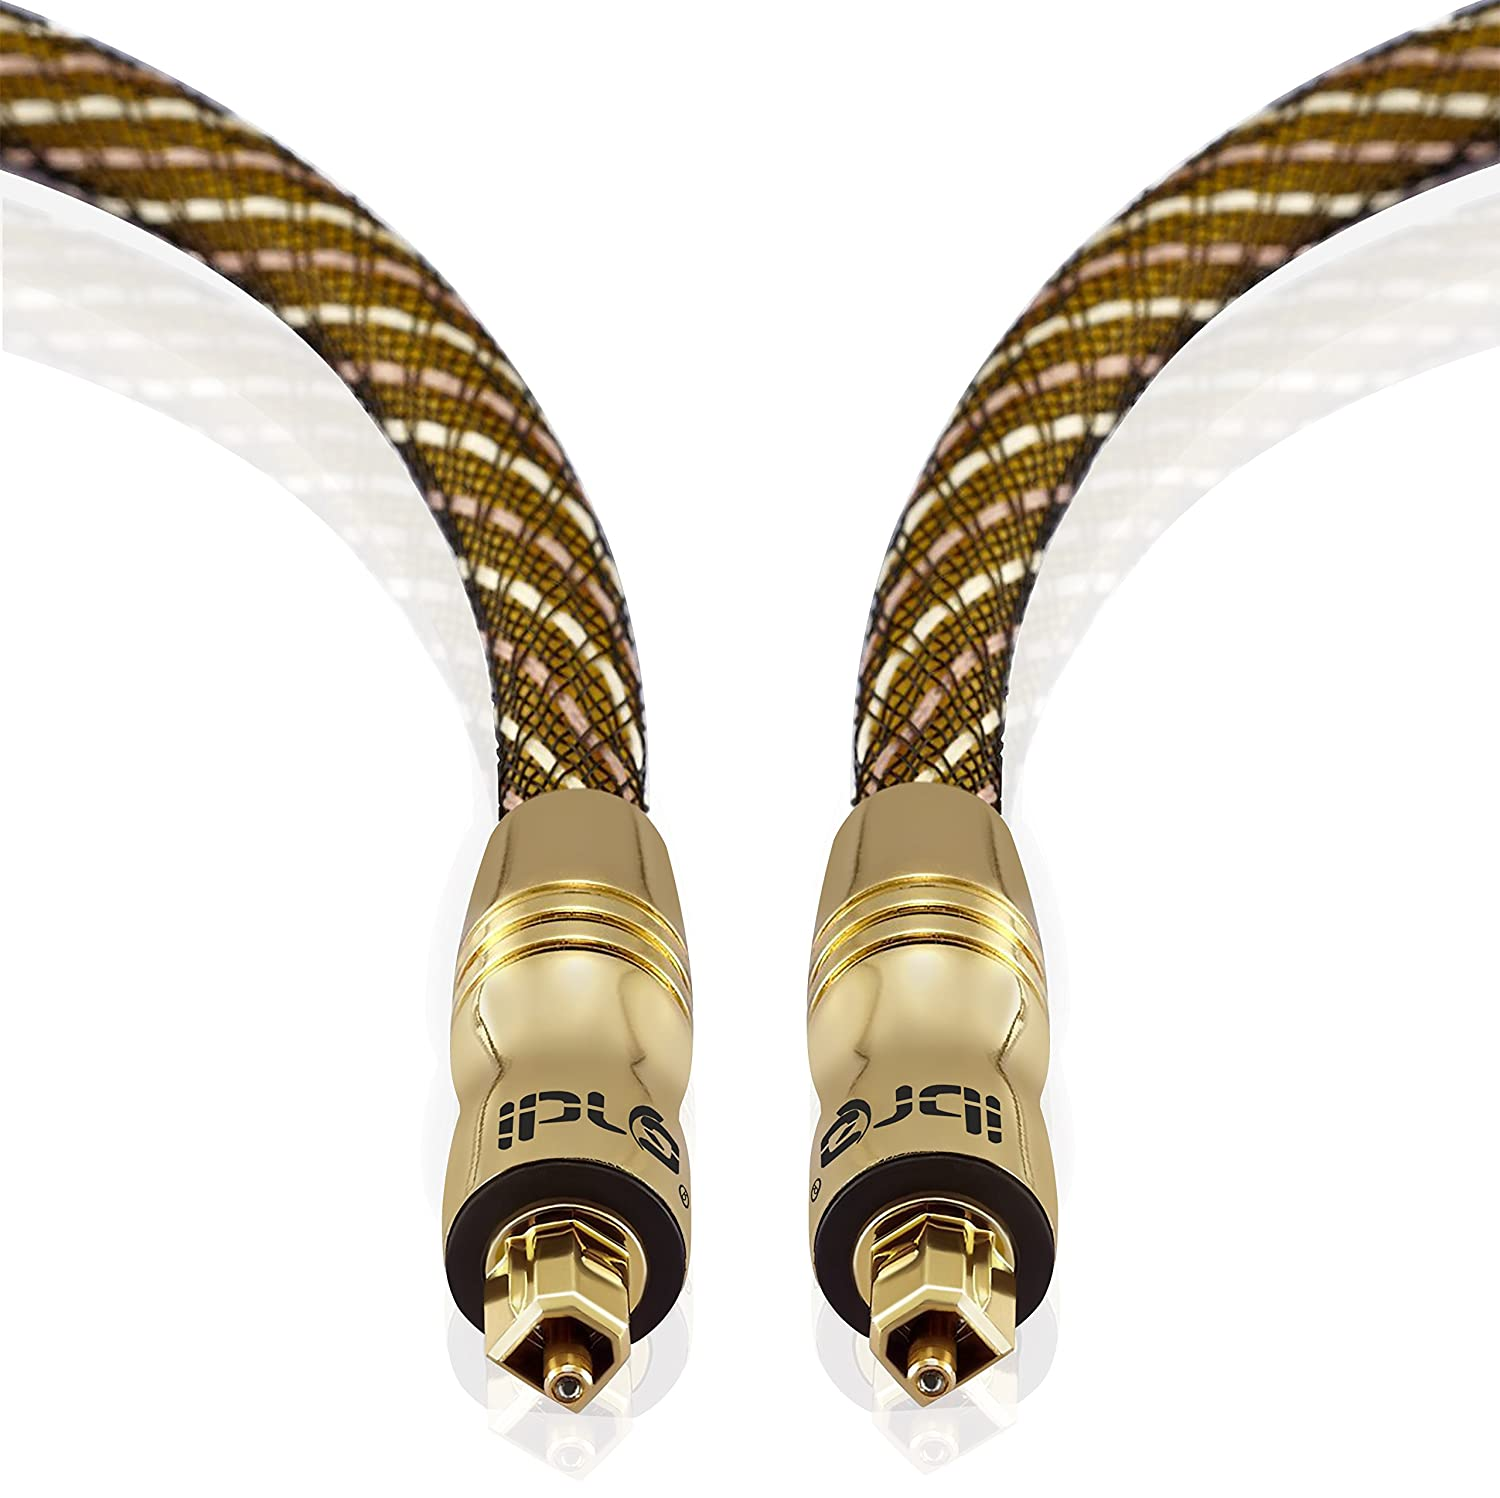 IBRA Master Gold Digital Optical Cable 10 Feets(3Meter) Install Series - suitable for PS3, Sky, Sky HD, LCD, LED, Plasma, Blu-ray, Home Cinema Systems, AV Amps